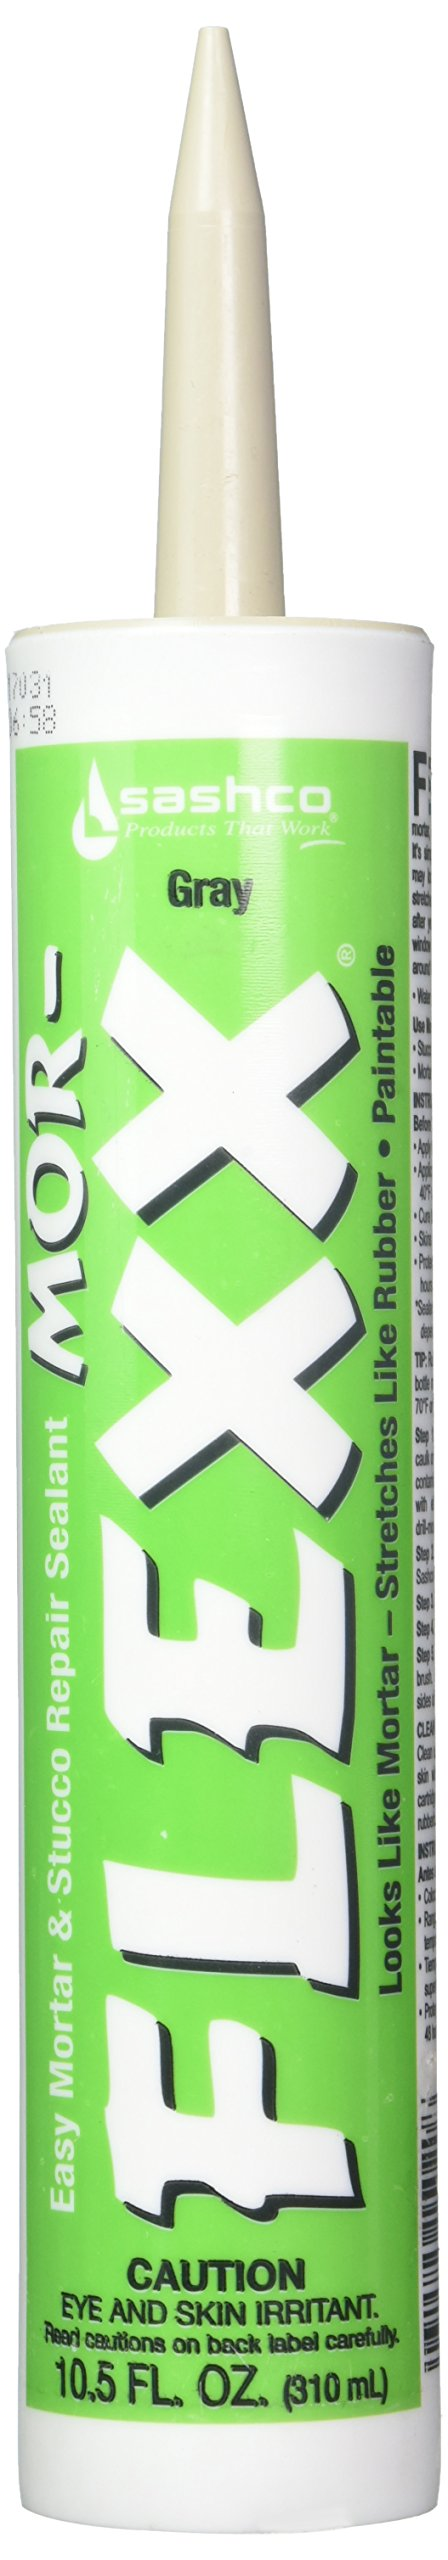 Mor-Flexx Sealant